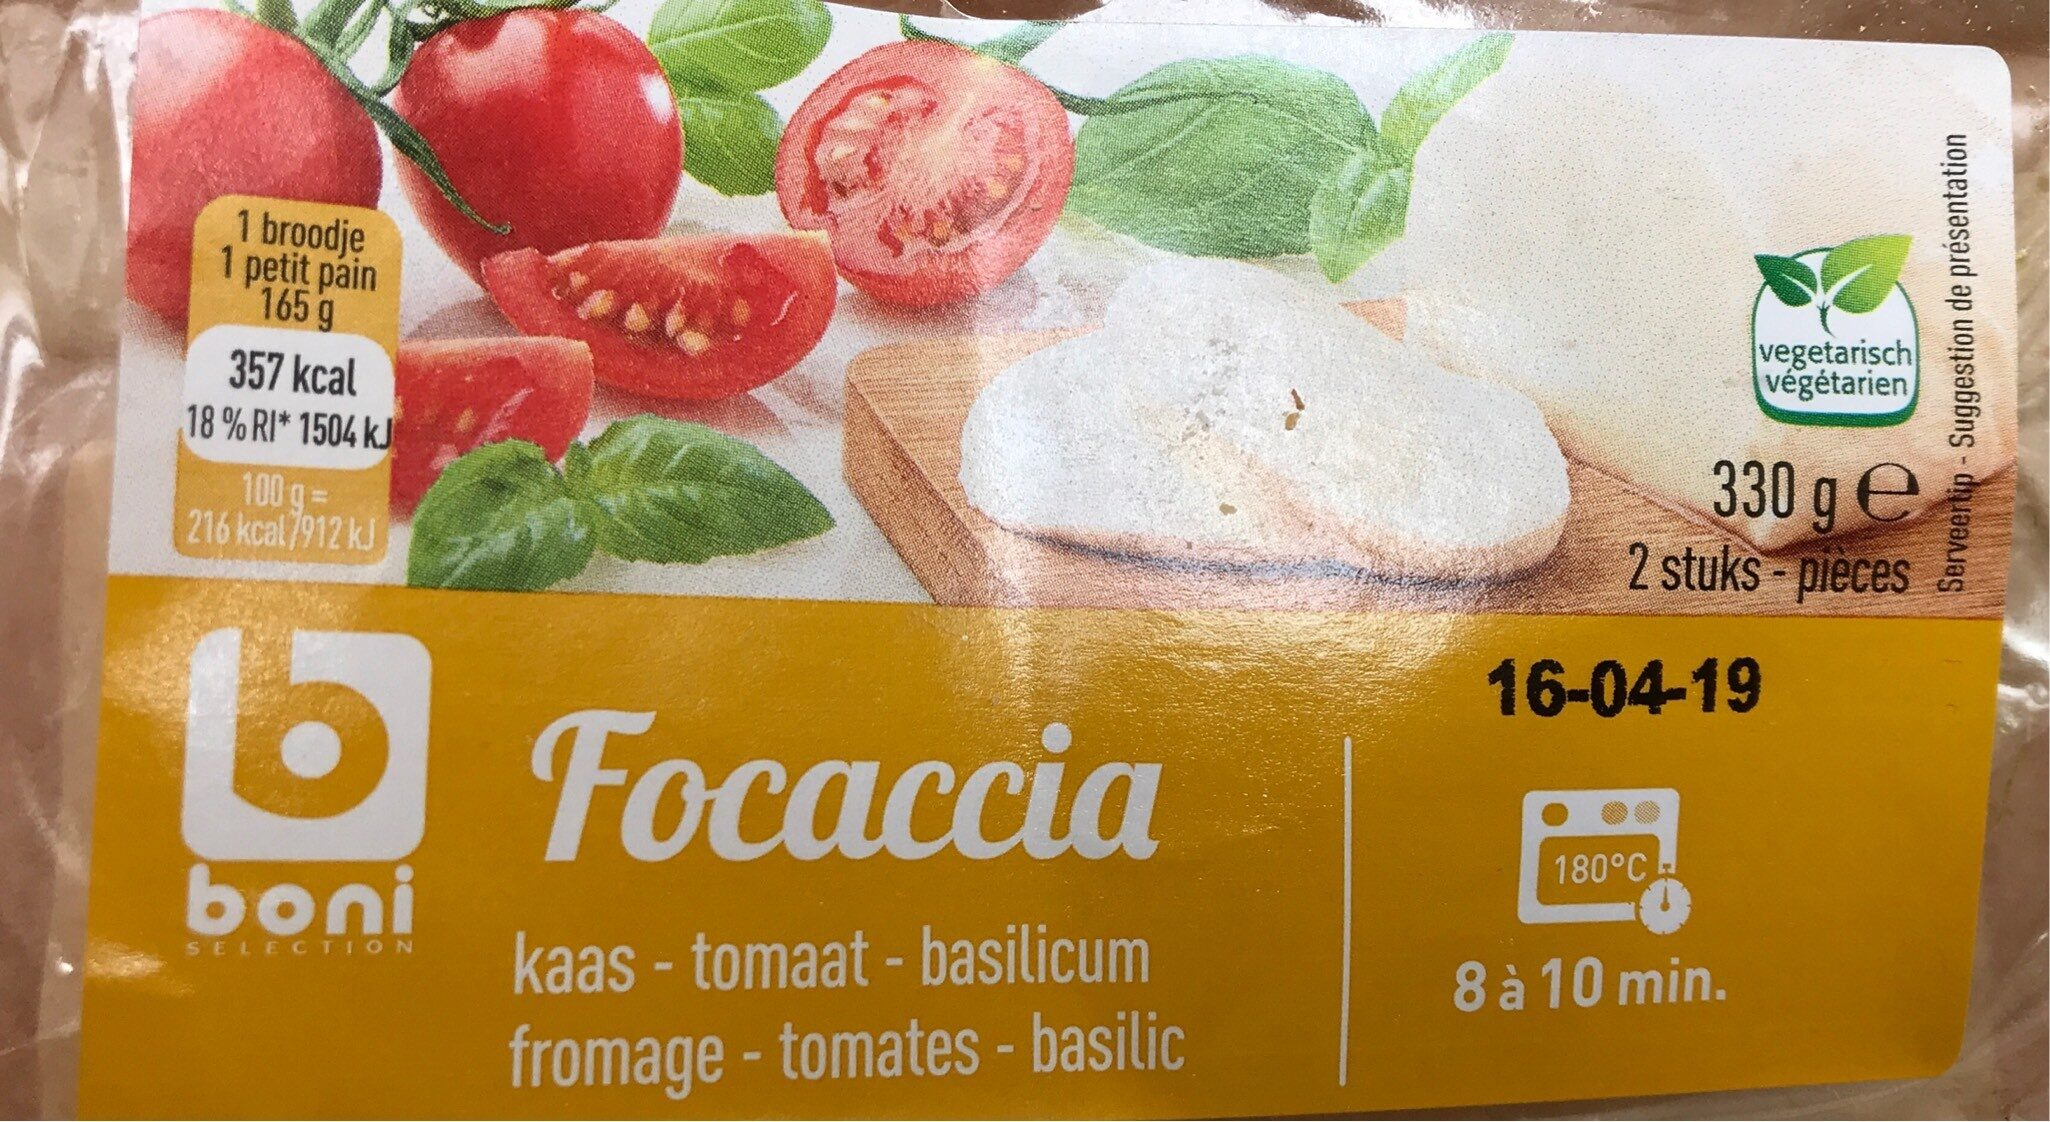 Focaccia fromage tomates basilic - Product